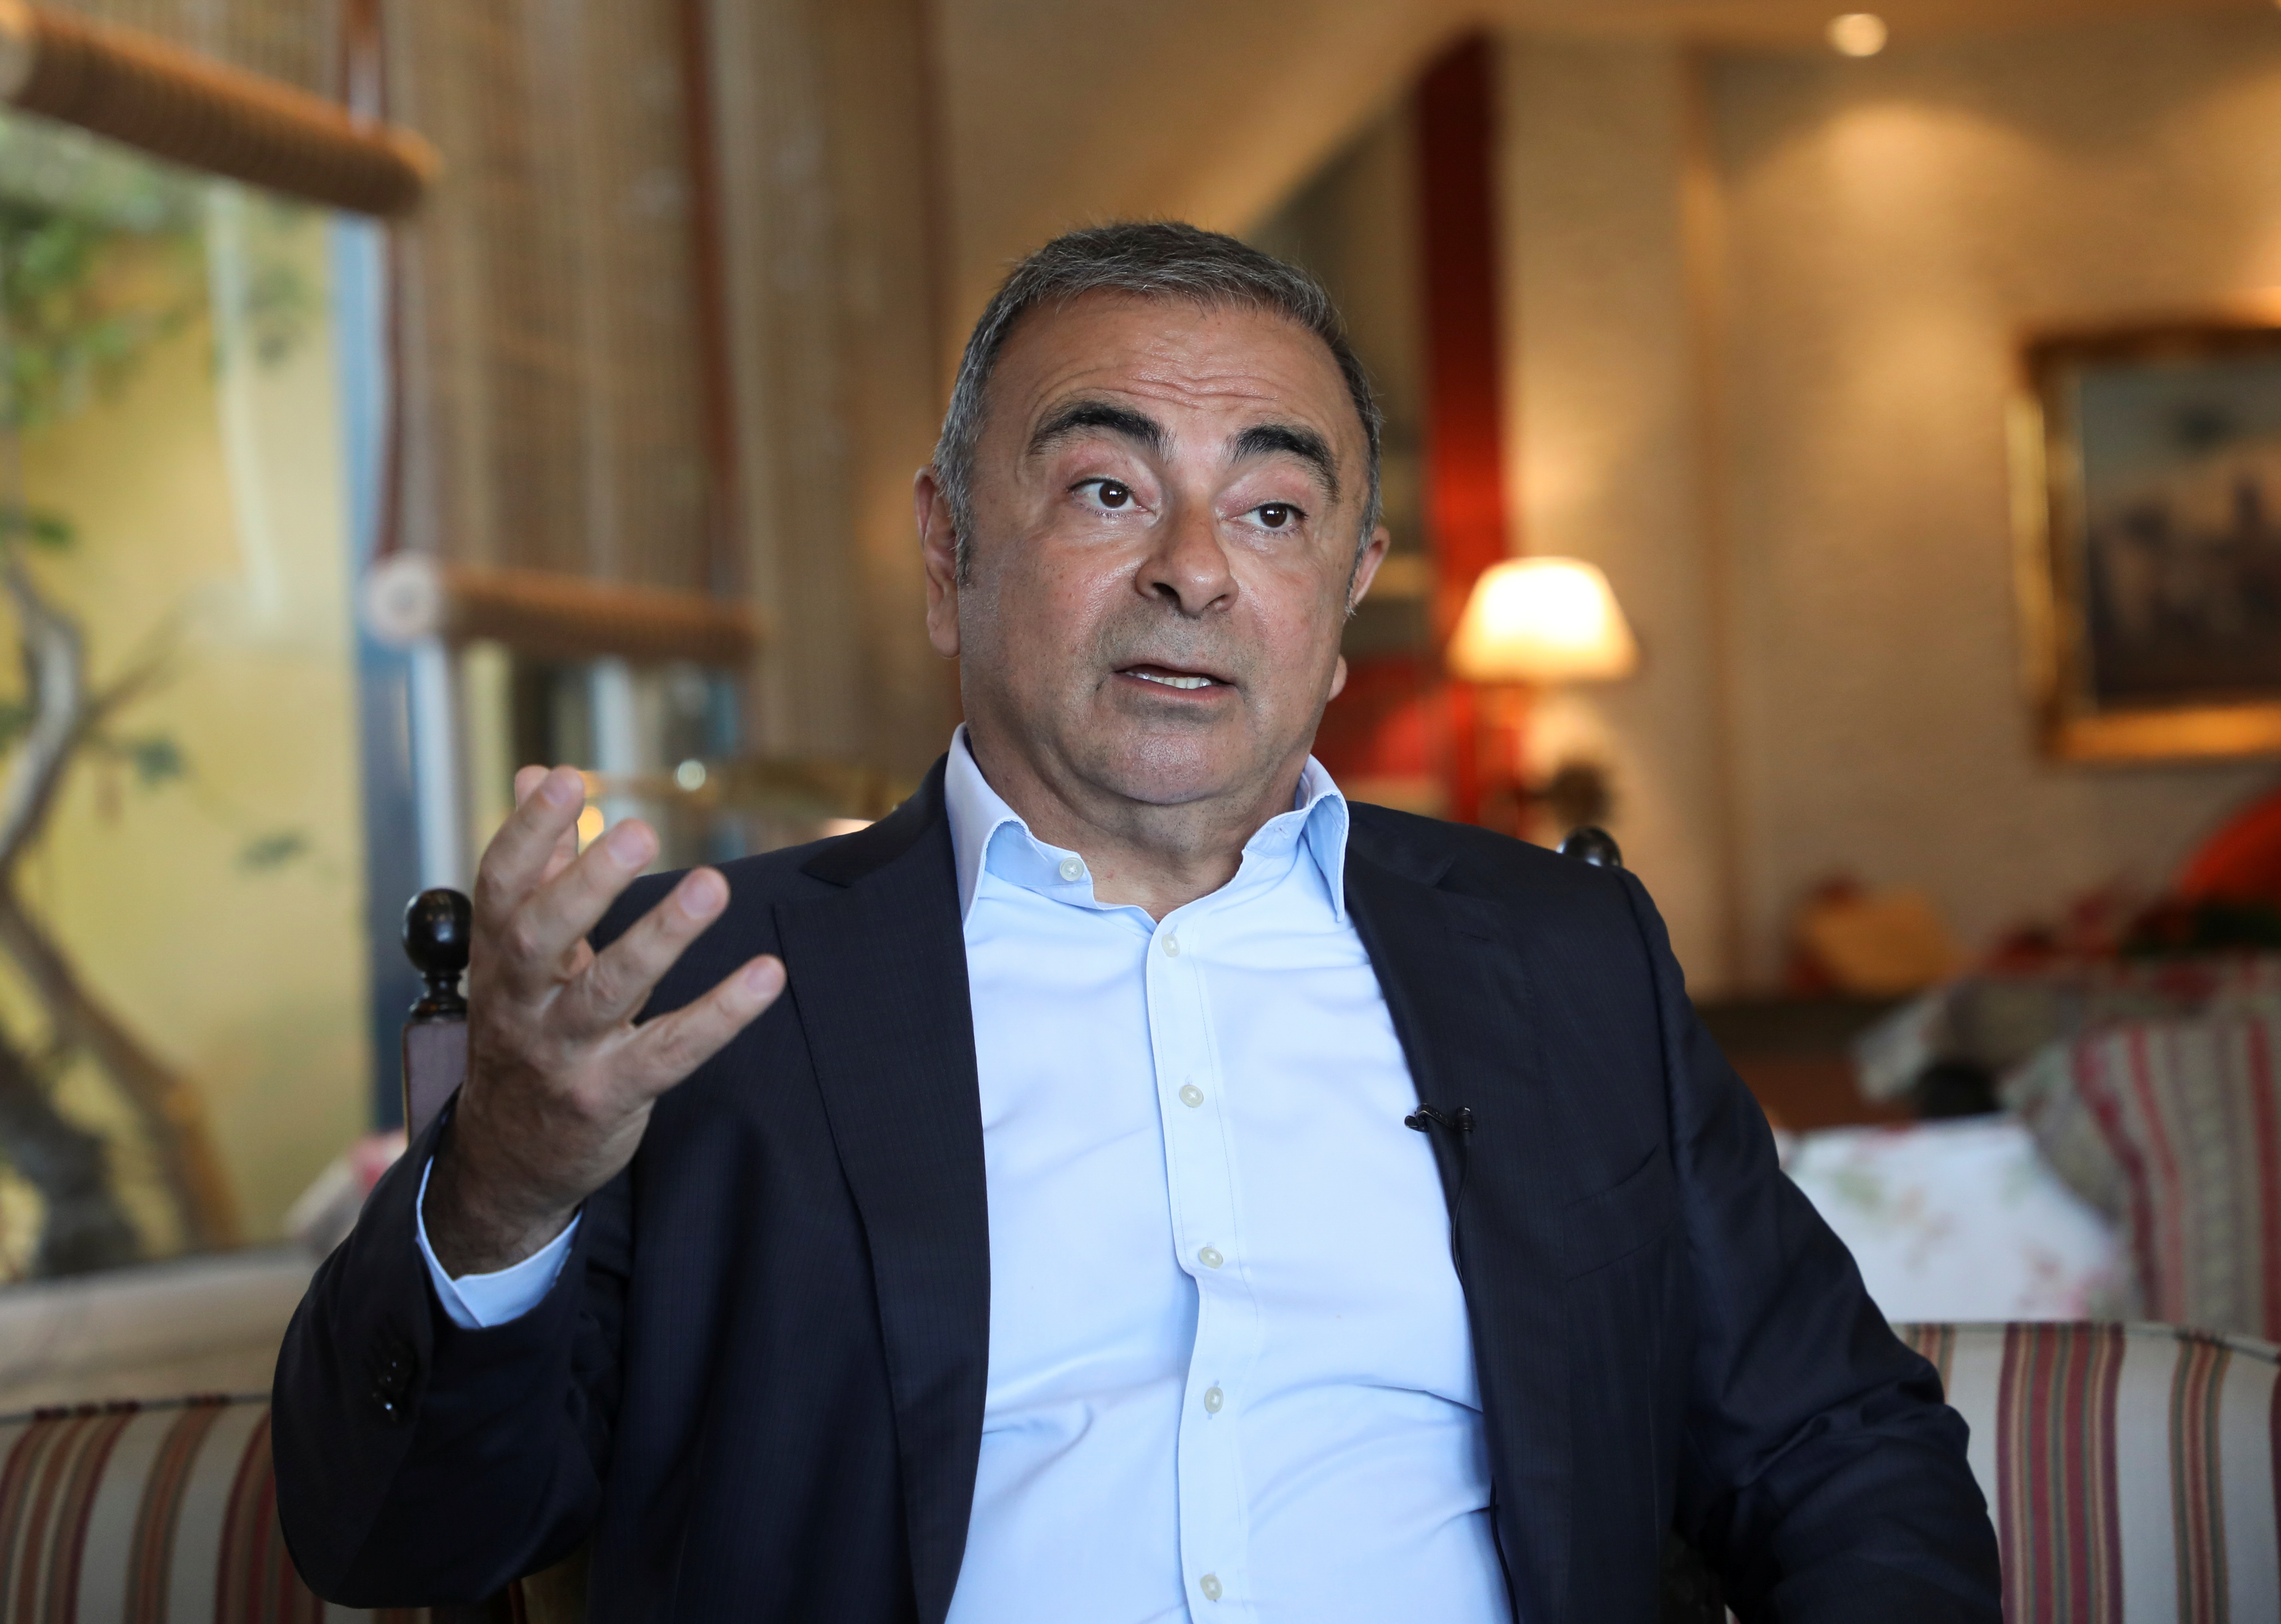 Former Nissan Chairman Carlos Ghosn talks during an interview with Reuters in Beirut, Lebanon June 14, 2021. REUTERS/Mohamed Azakir